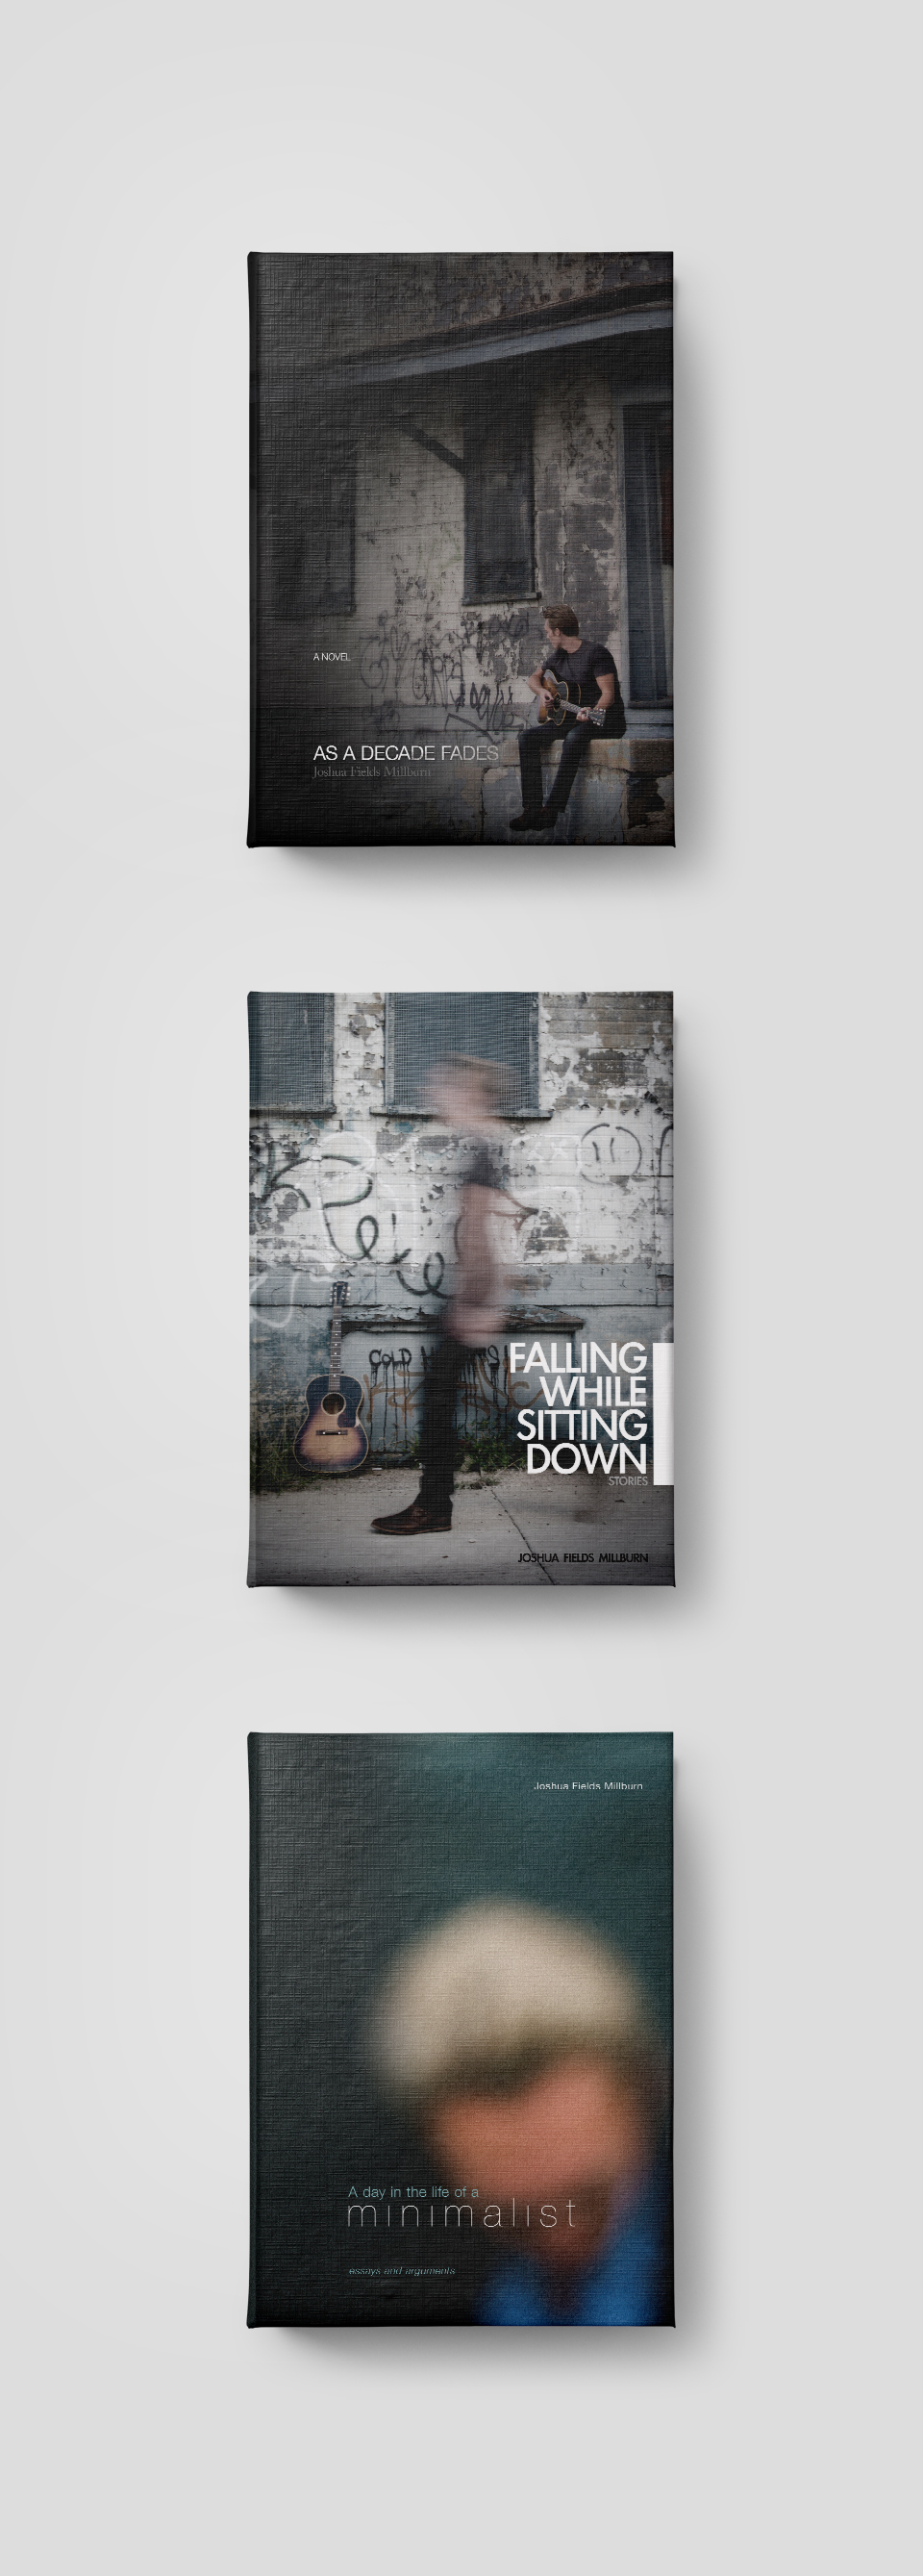 The Minimalists Books - Covers by SPYR